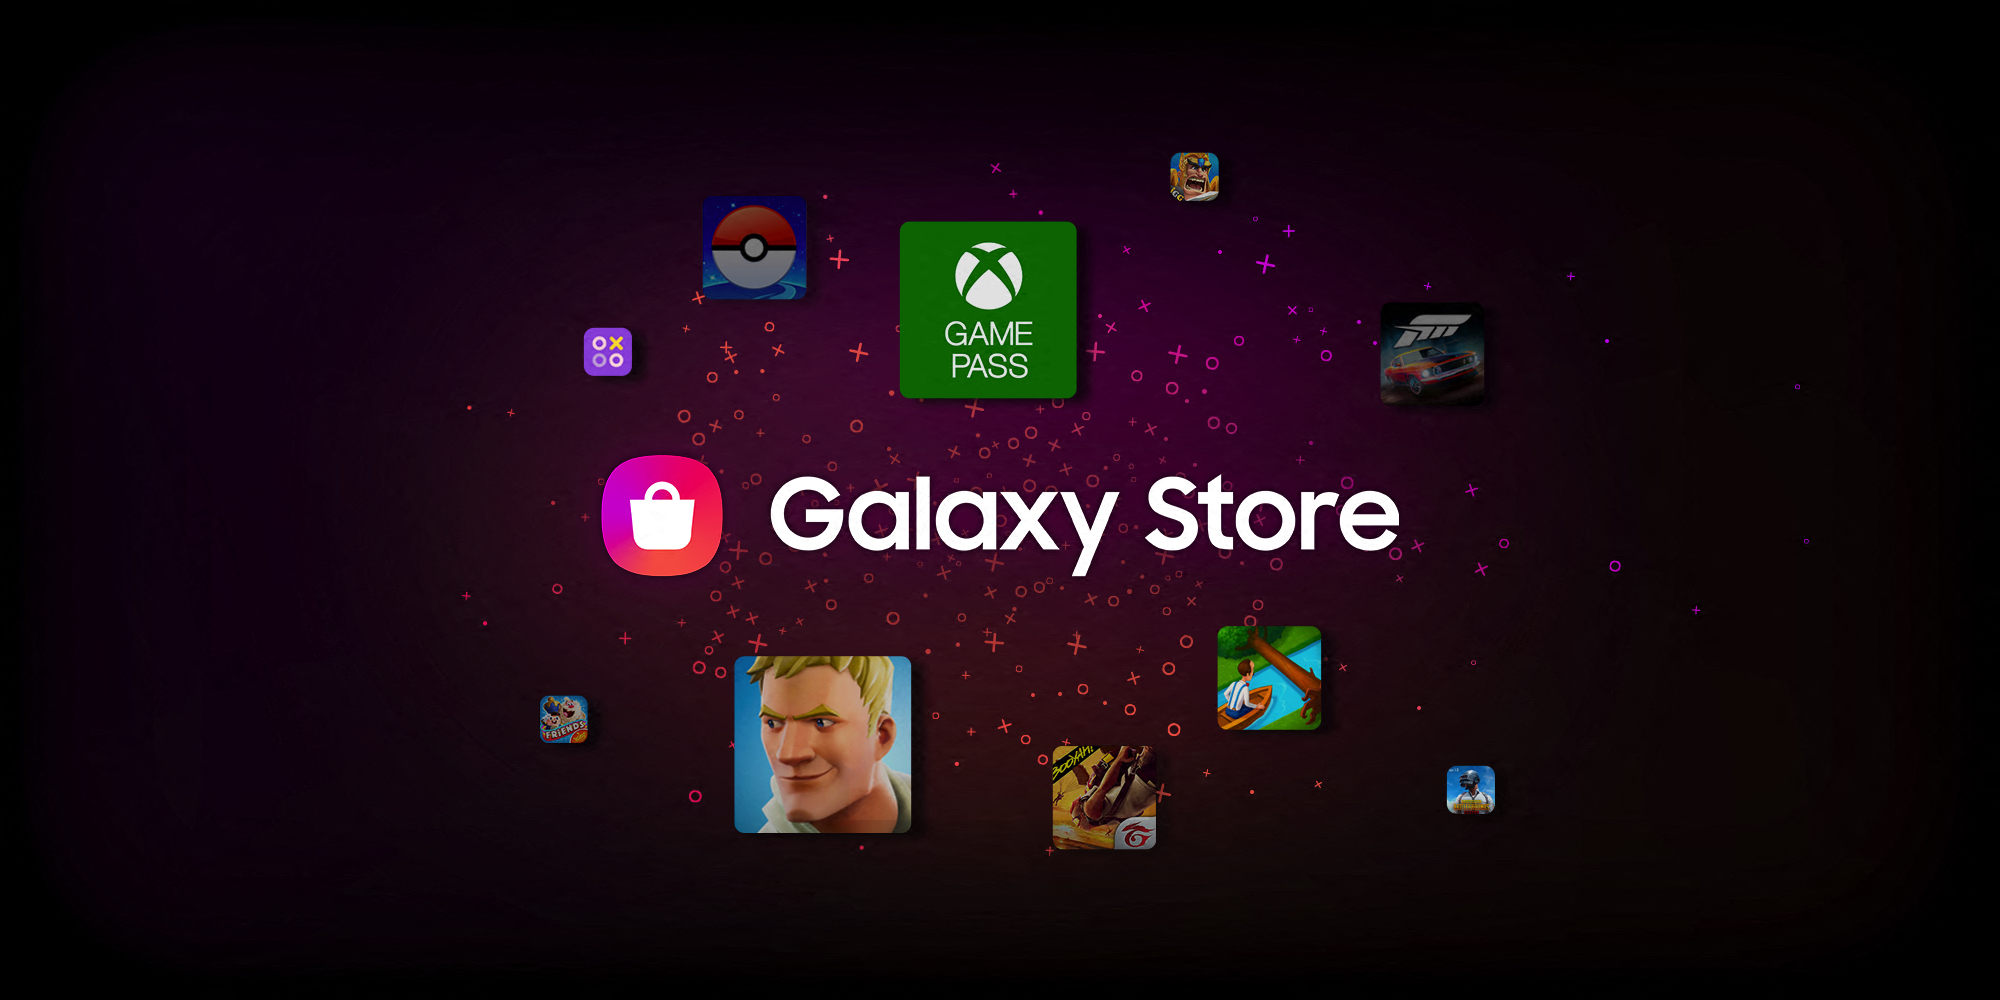 Galaxy Store Goes All-in for Gaming